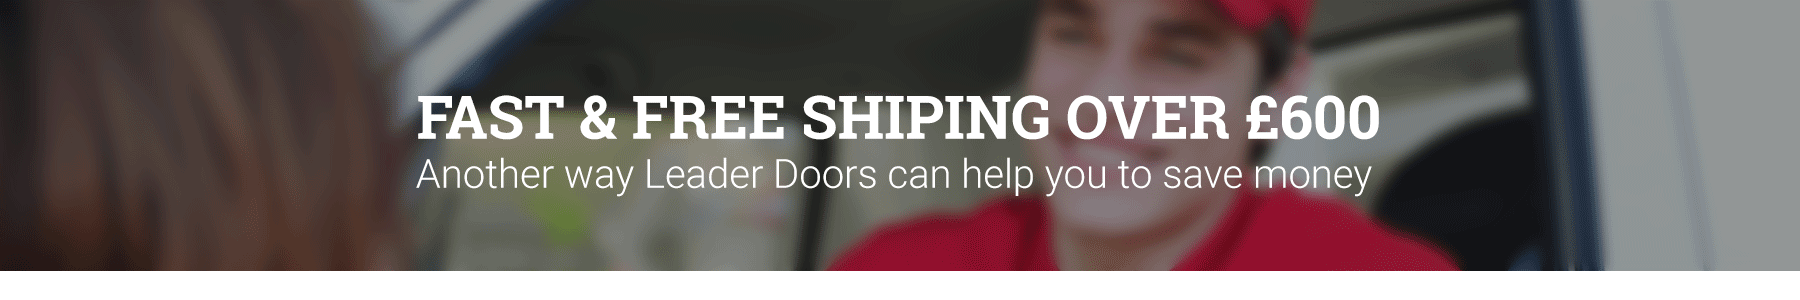 FAST & FREE Shipping With Leader Doors When You Spend £600